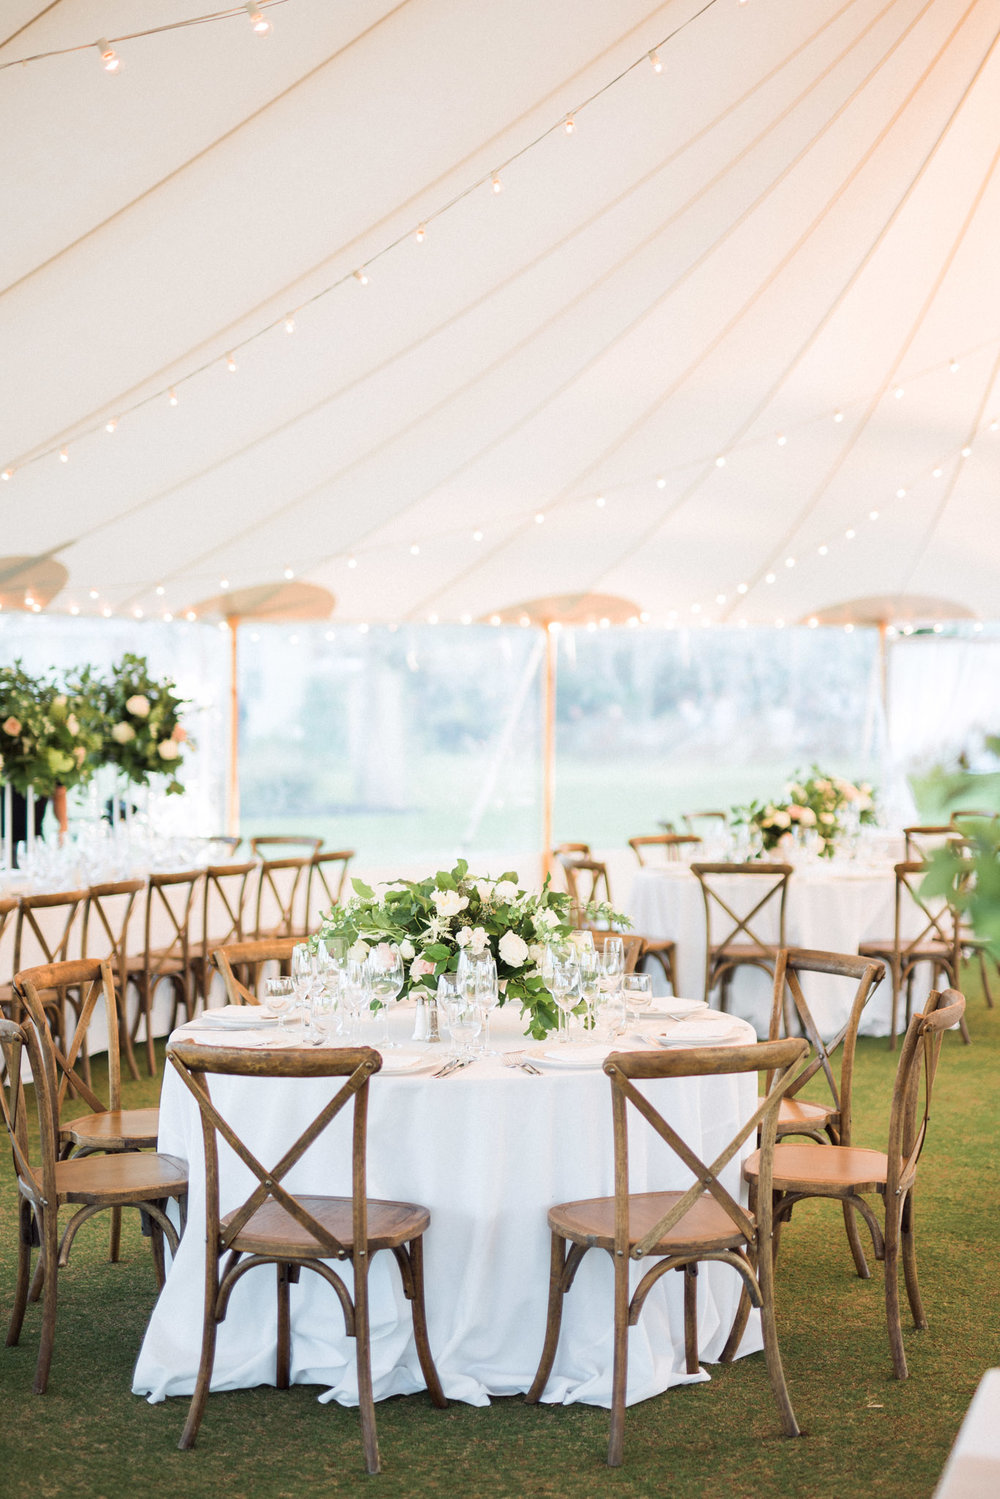 Tented wedding reception with French country wood chairs, garden style florals with greenery.